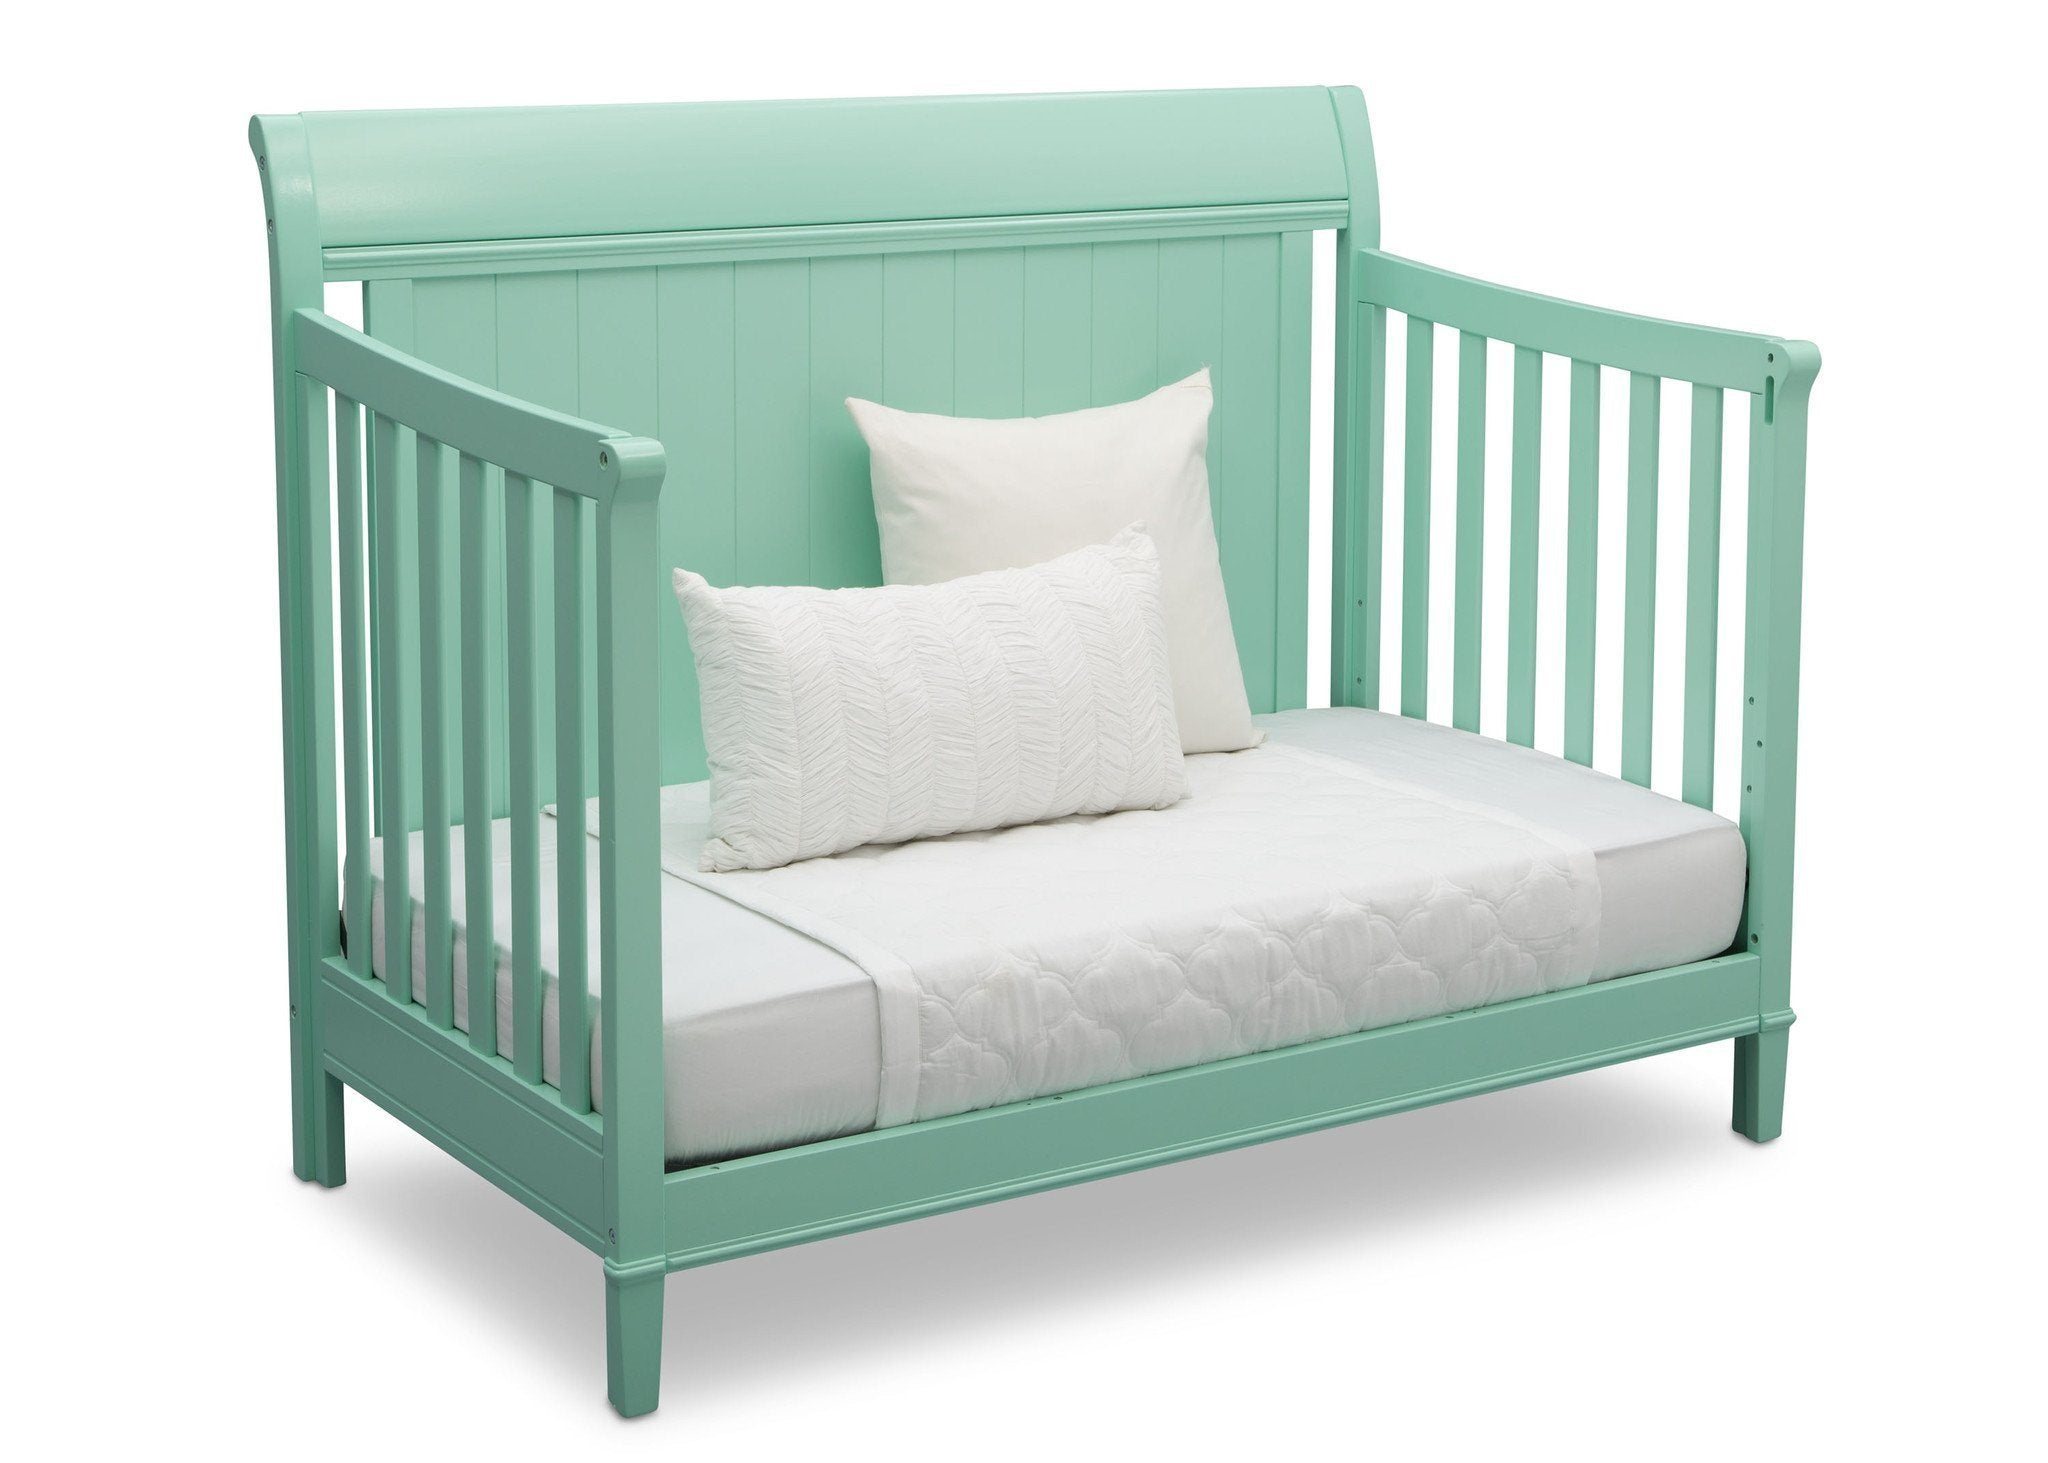 Delta Children Aqua (347) New Haven 4-in-1 Crib, Angled Conversion to Daybed, e5e